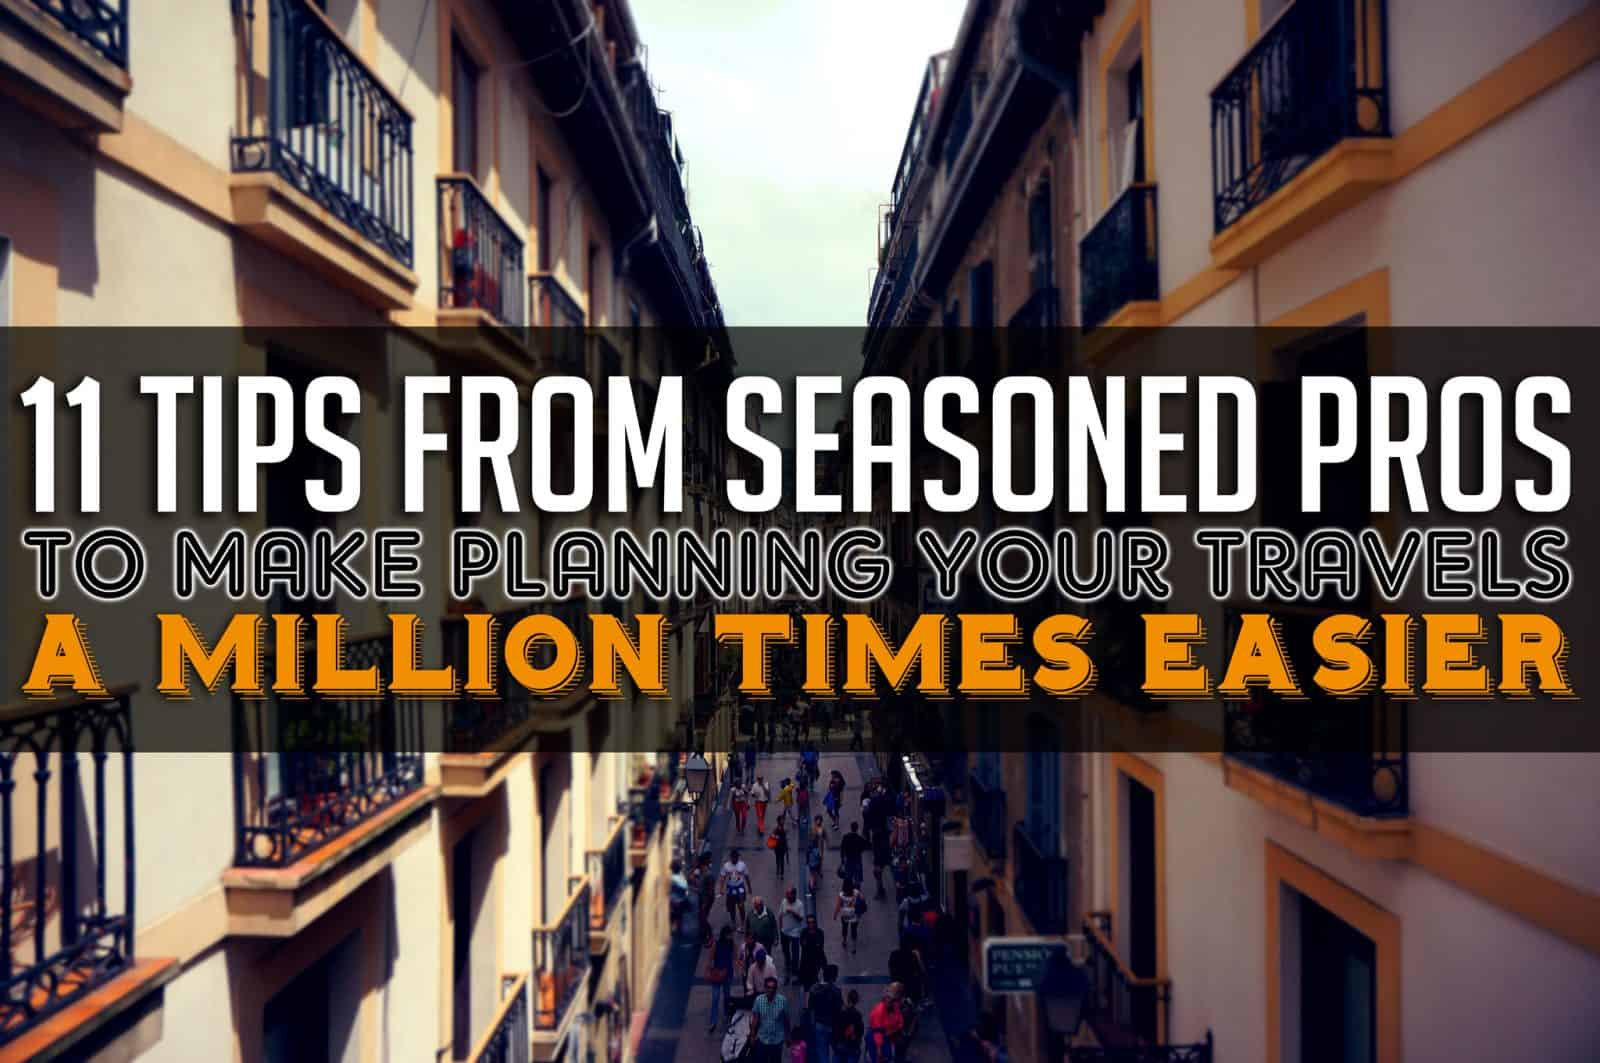 11 Tips from Seasoned Pros to Make Planning Your Travels a Million Times Easier